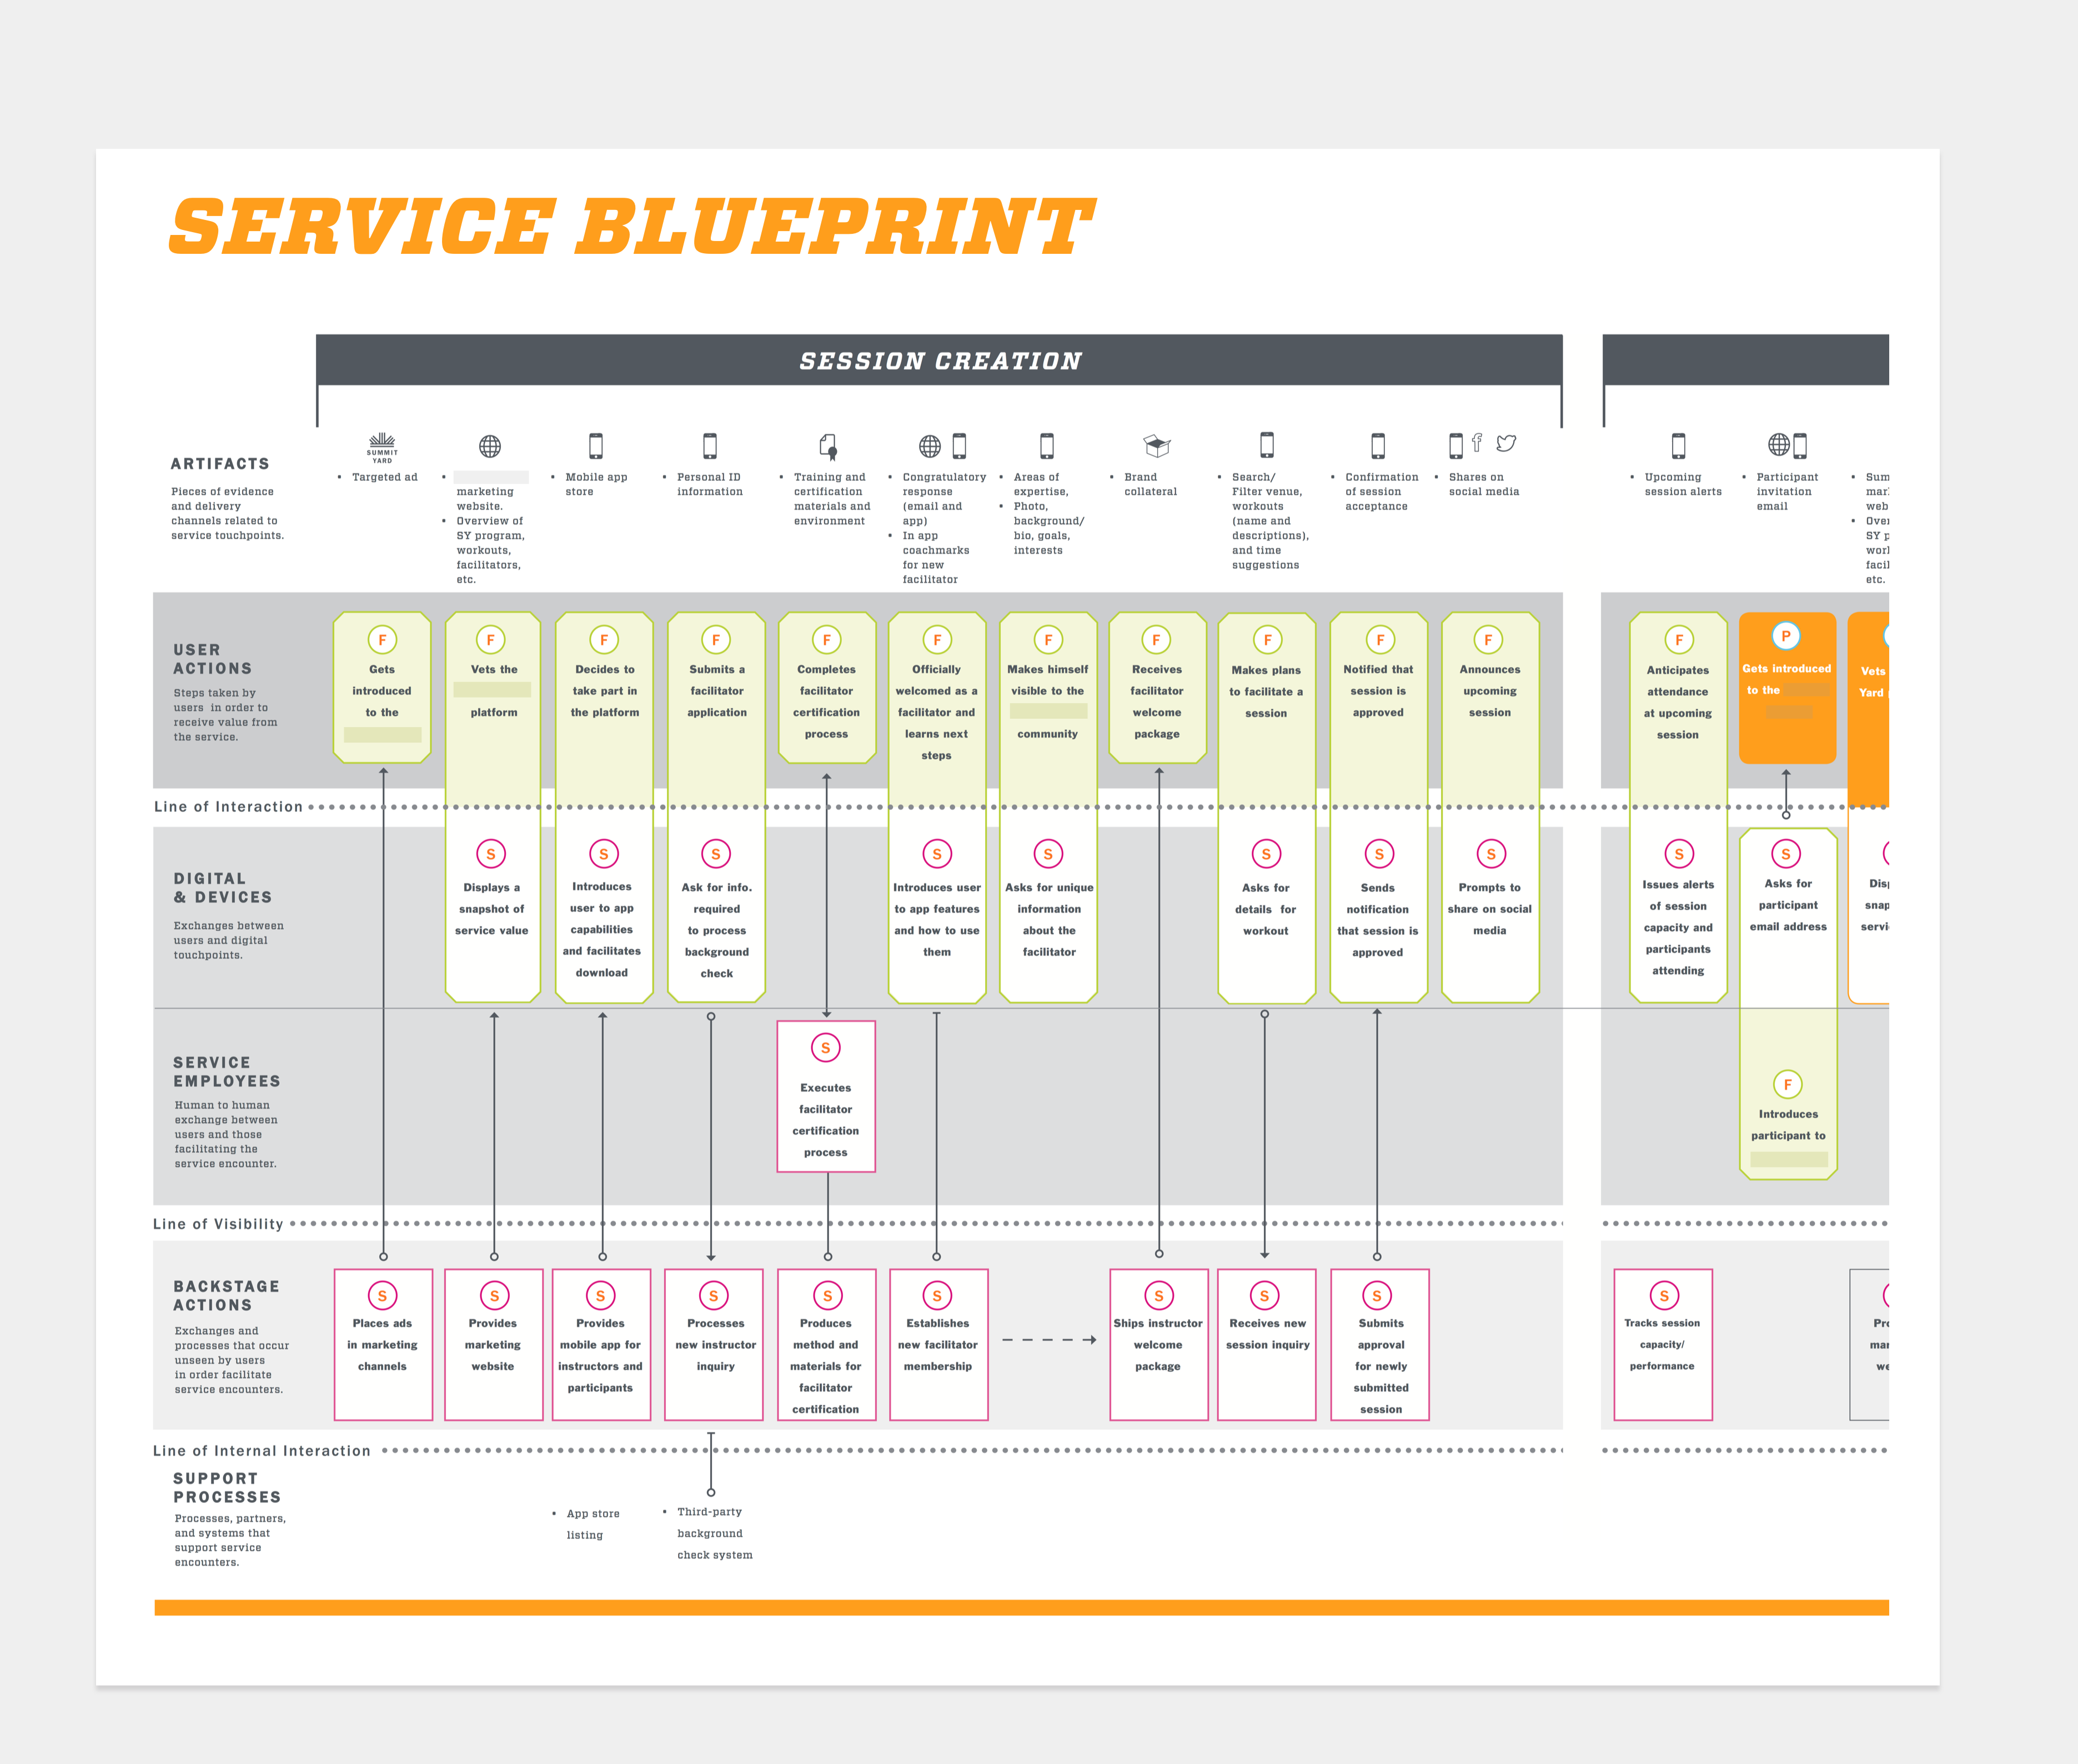 5 reasons why you should make a service blueprint read more on our 5 reasons why you should make a service blueprint read more on our website malvernweather Image collections